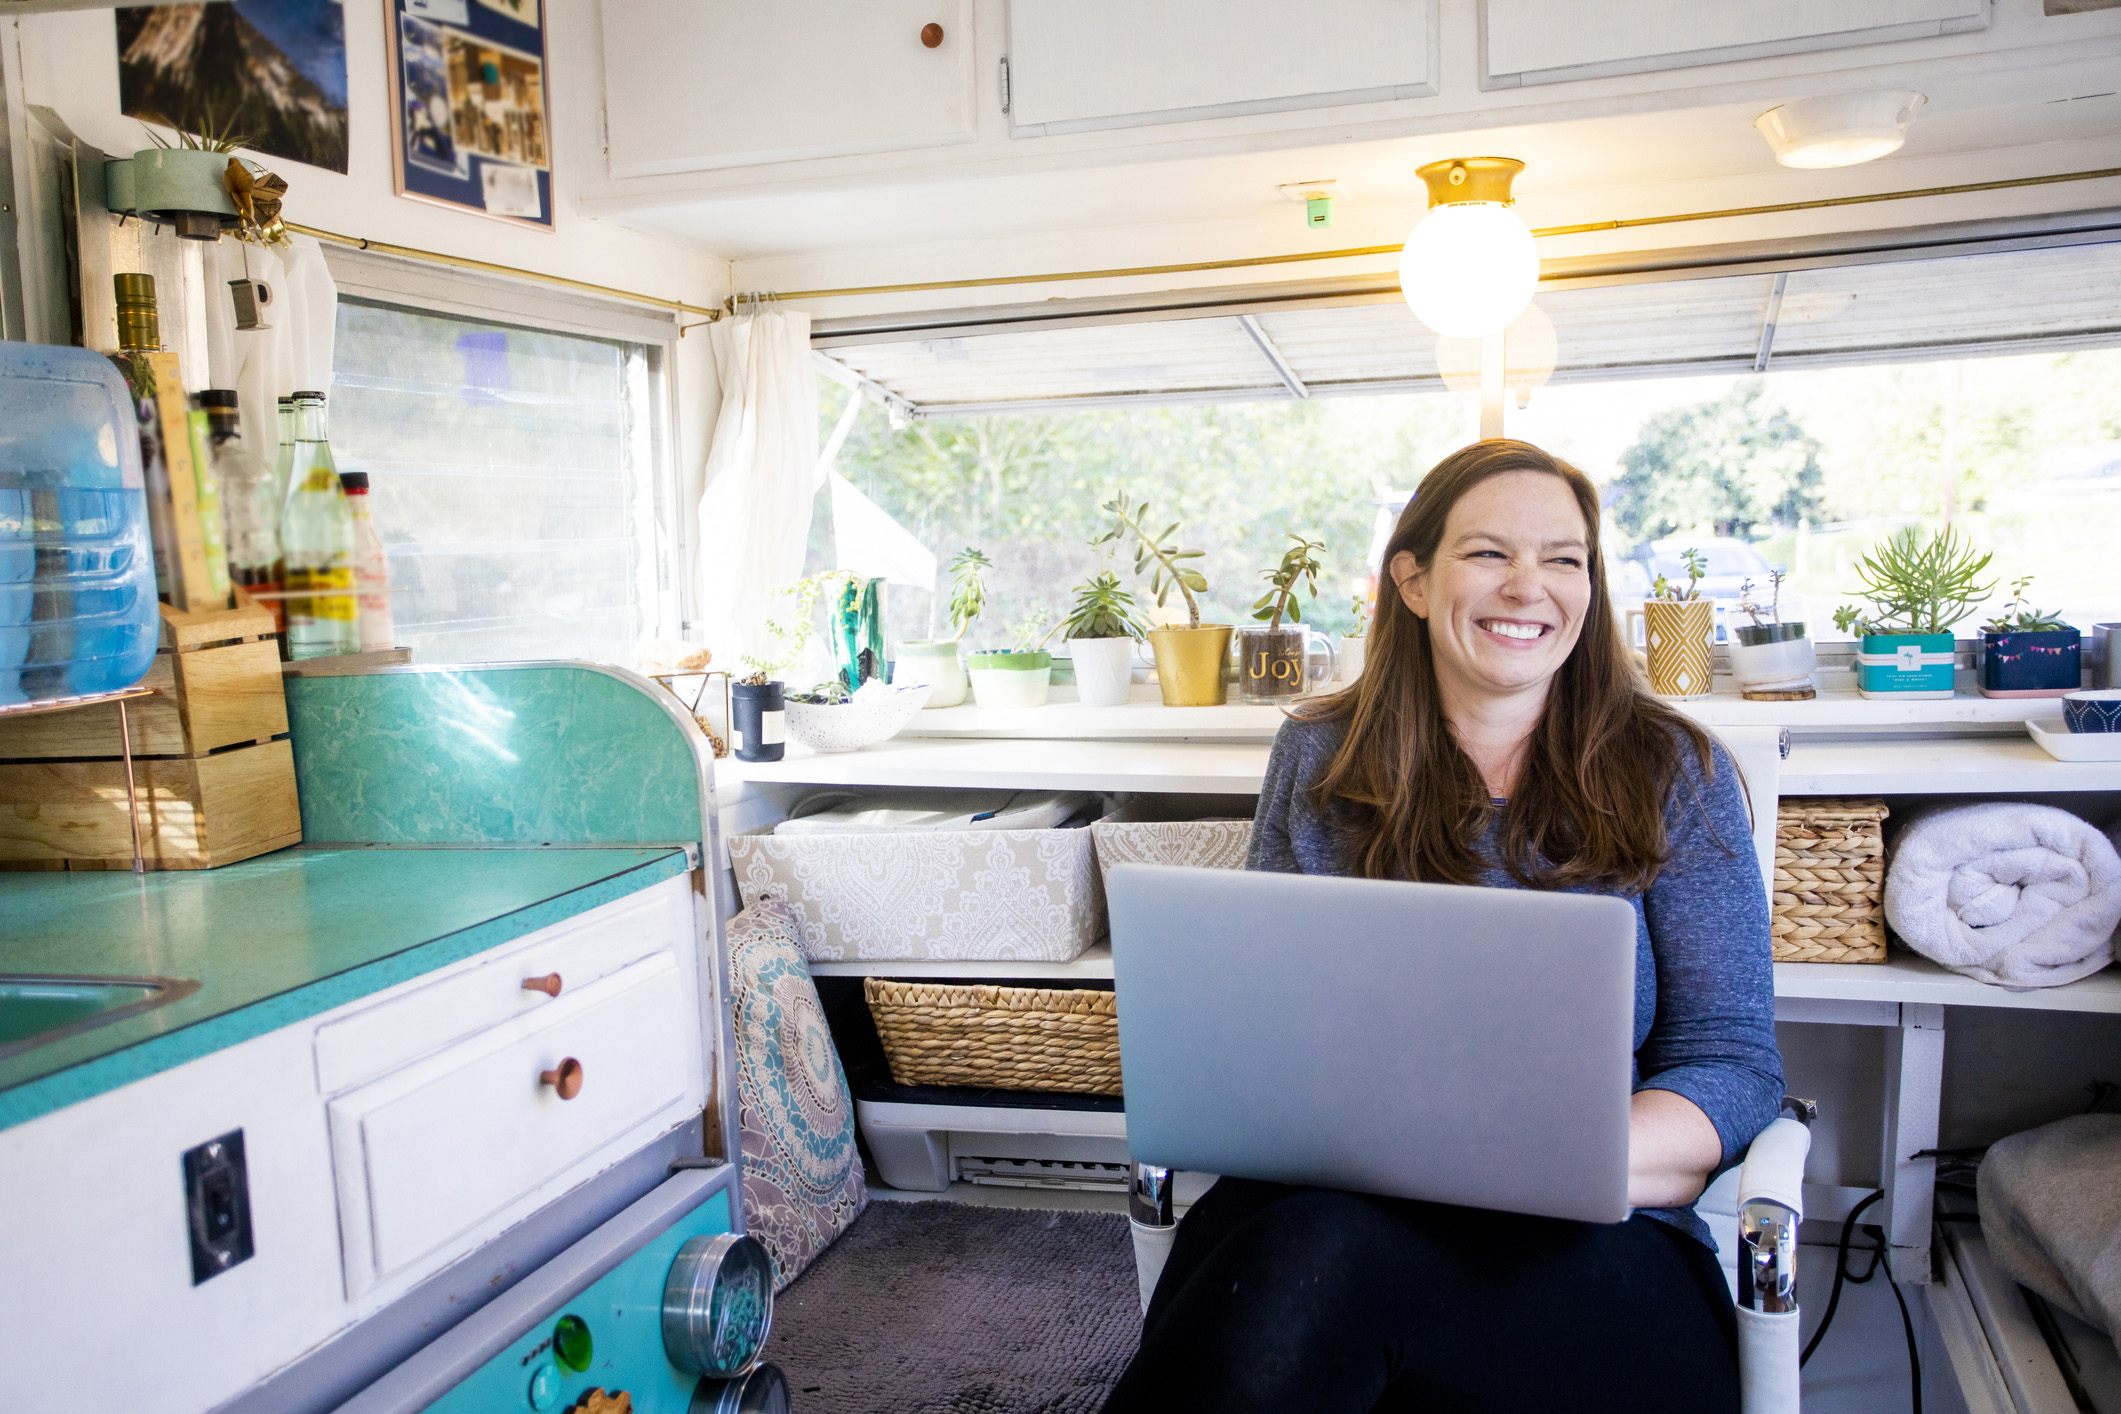 Woman Laughing in Tiny Home